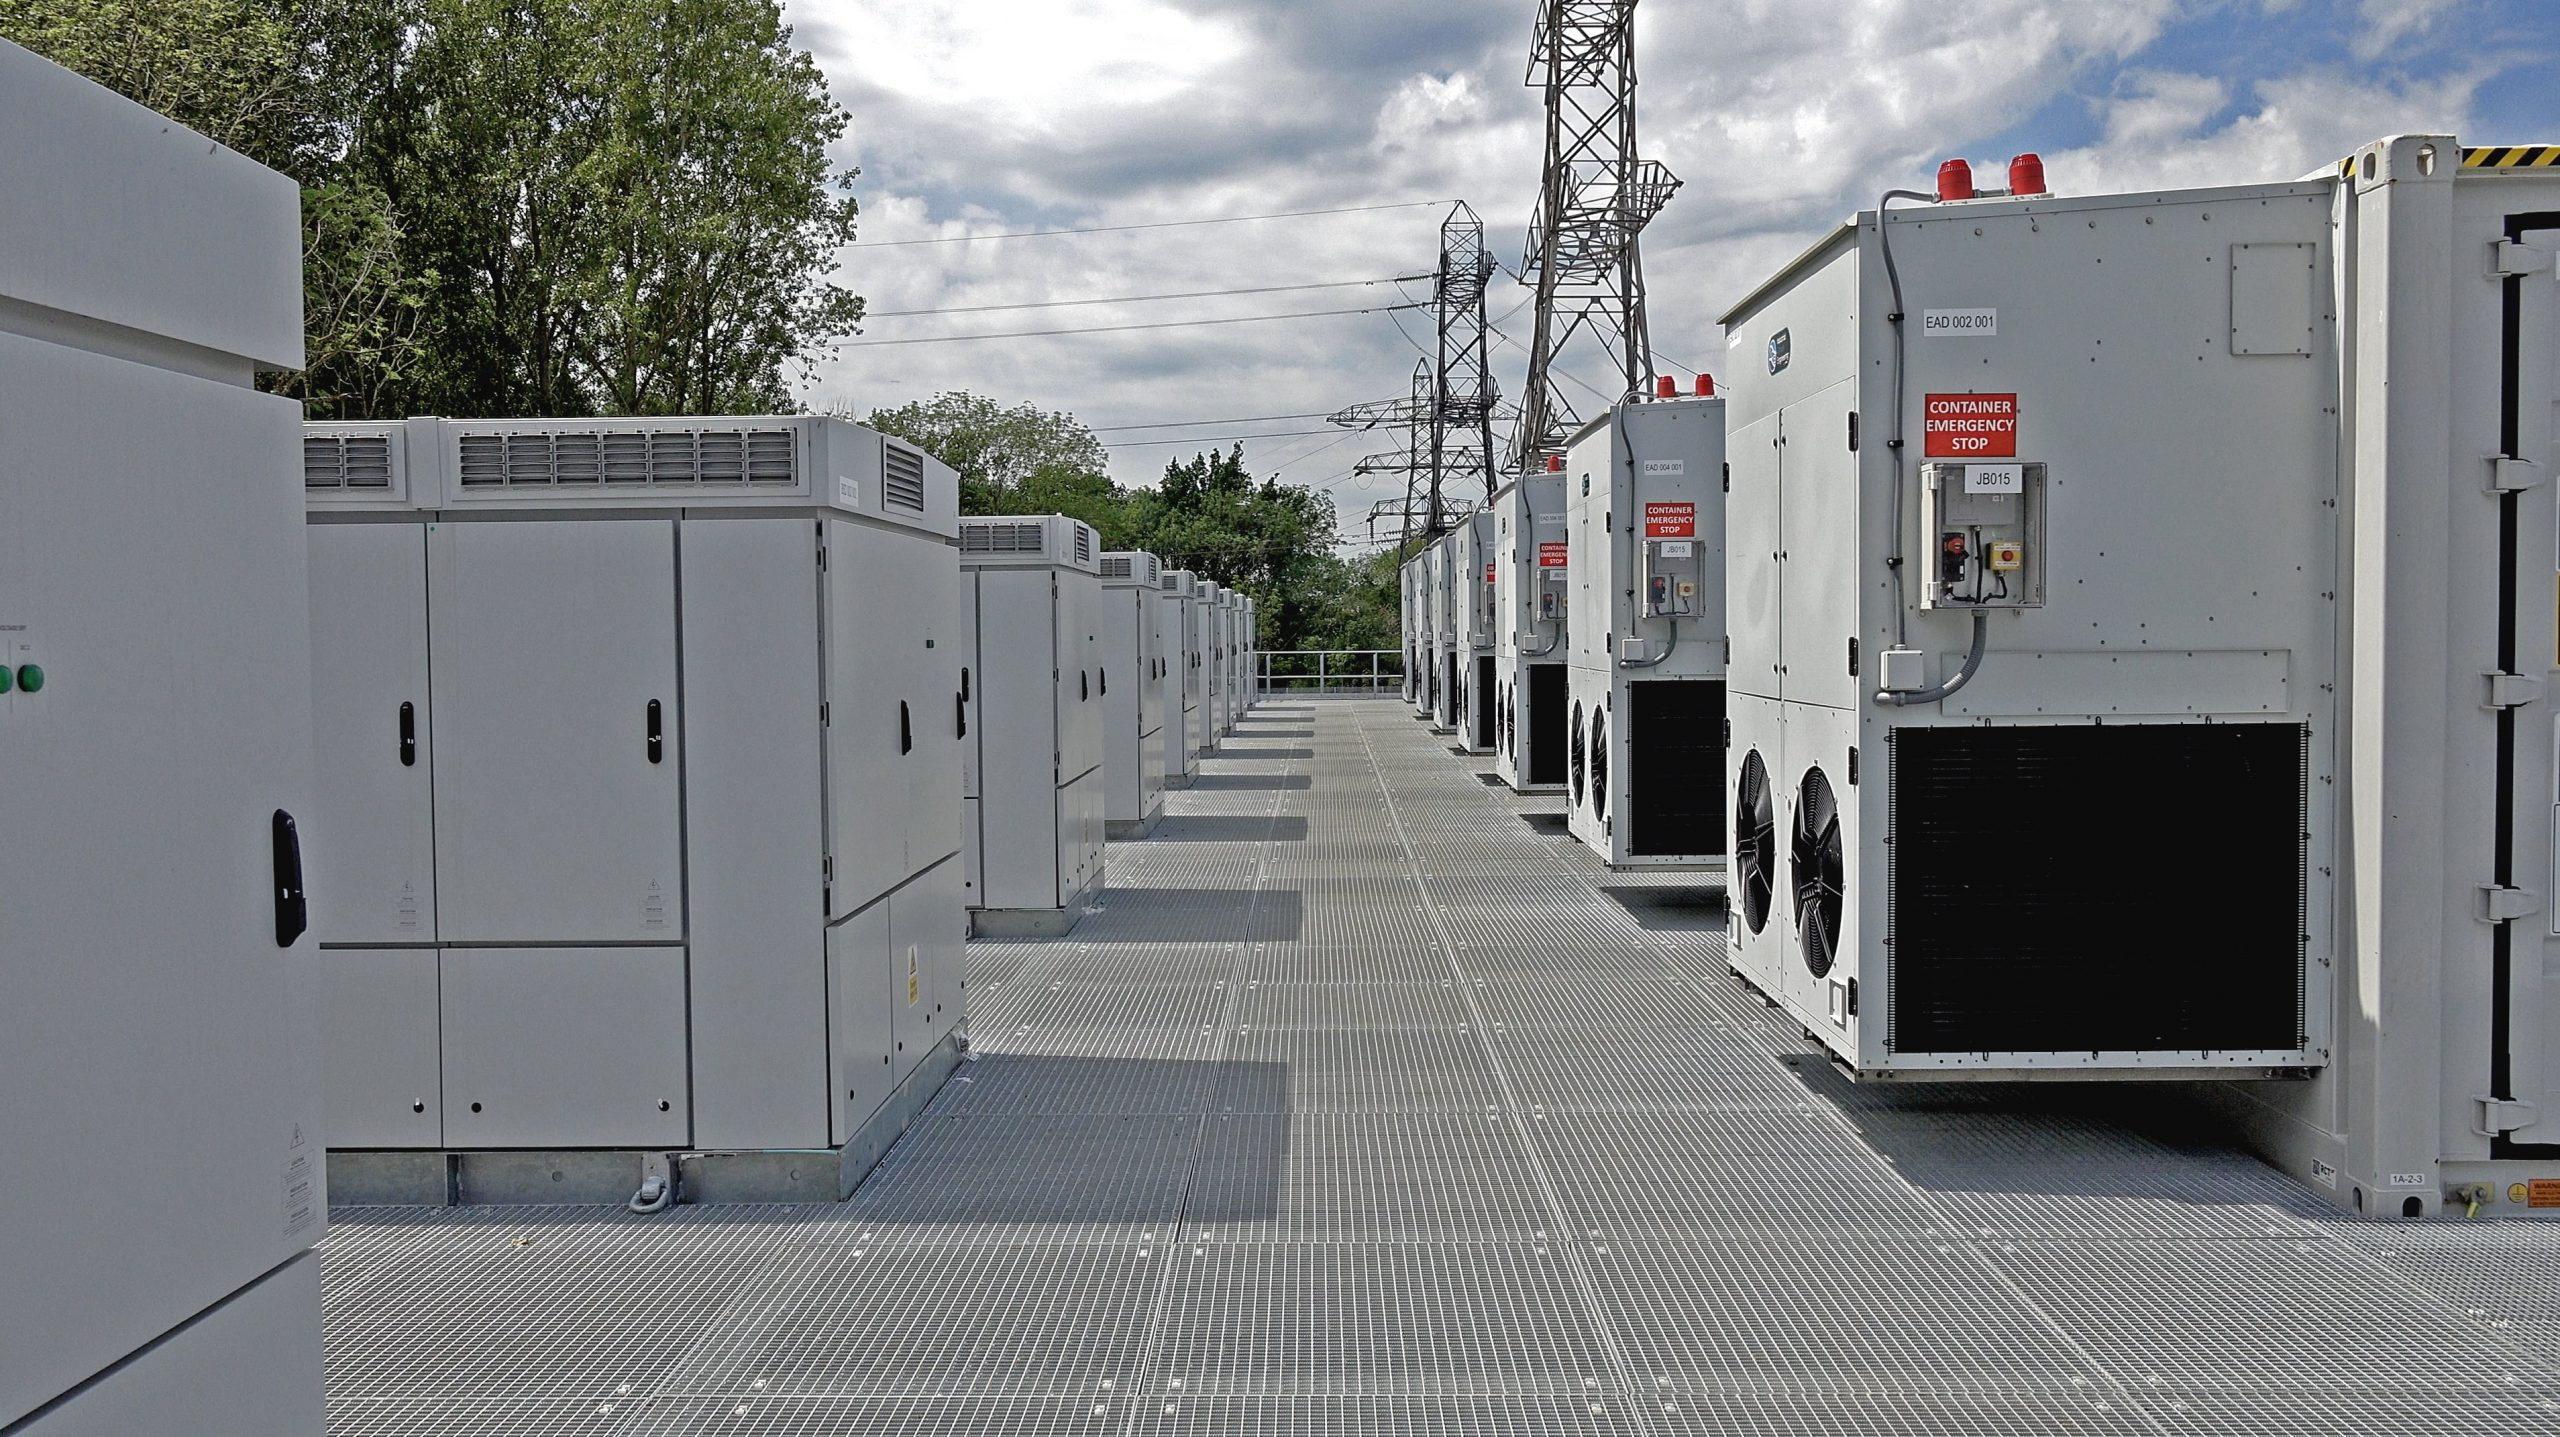 The grid-scale battery storage system, part of the £41 million Energy Superhub Oxford (ESO) project